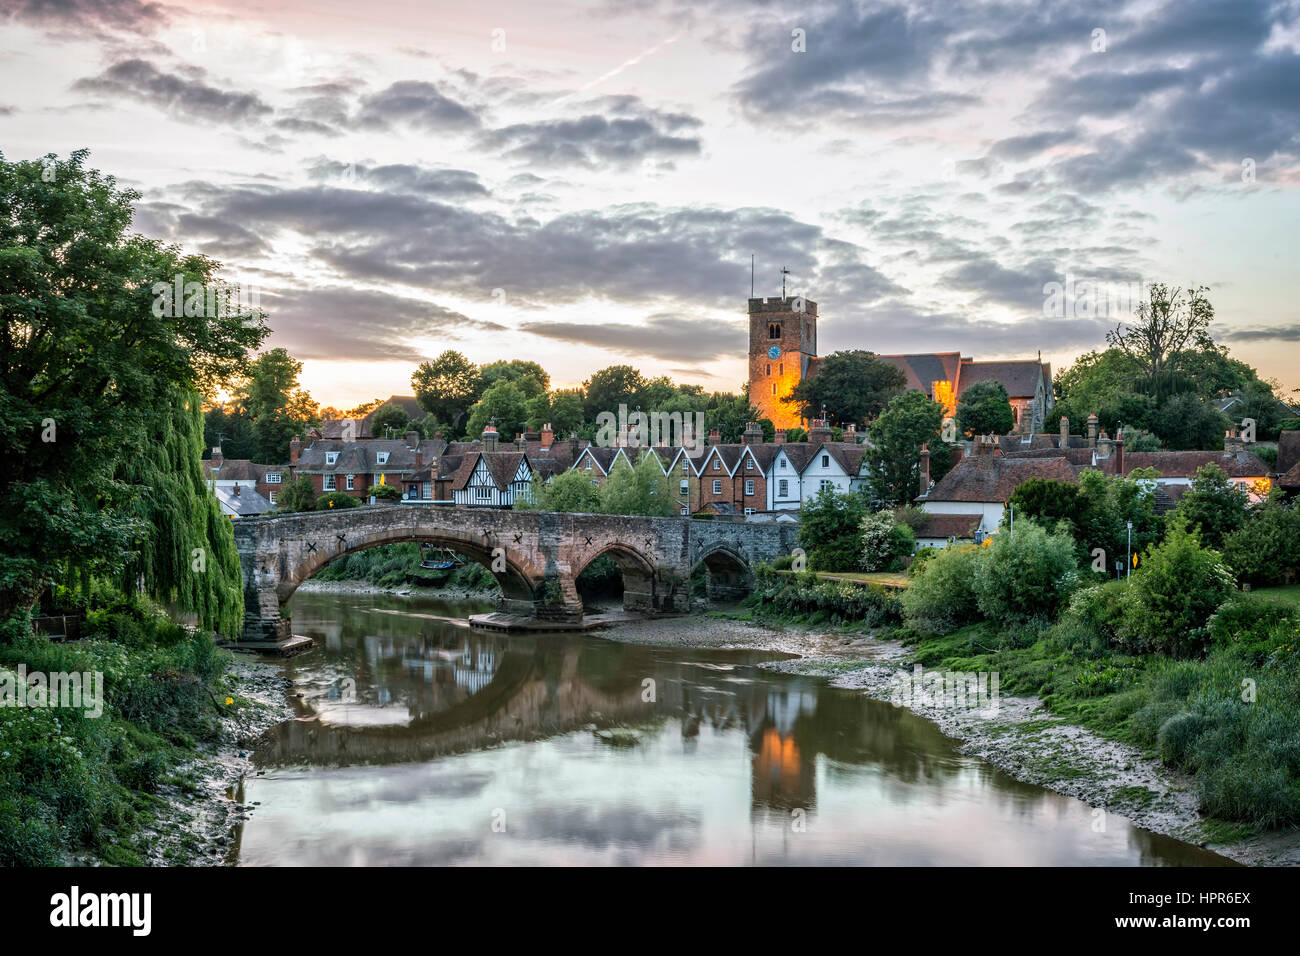 Aylesford, United Kingdom - June 6, 2015: Evening view of Aylesford village with medeival bridge across river Medway - Stock Image